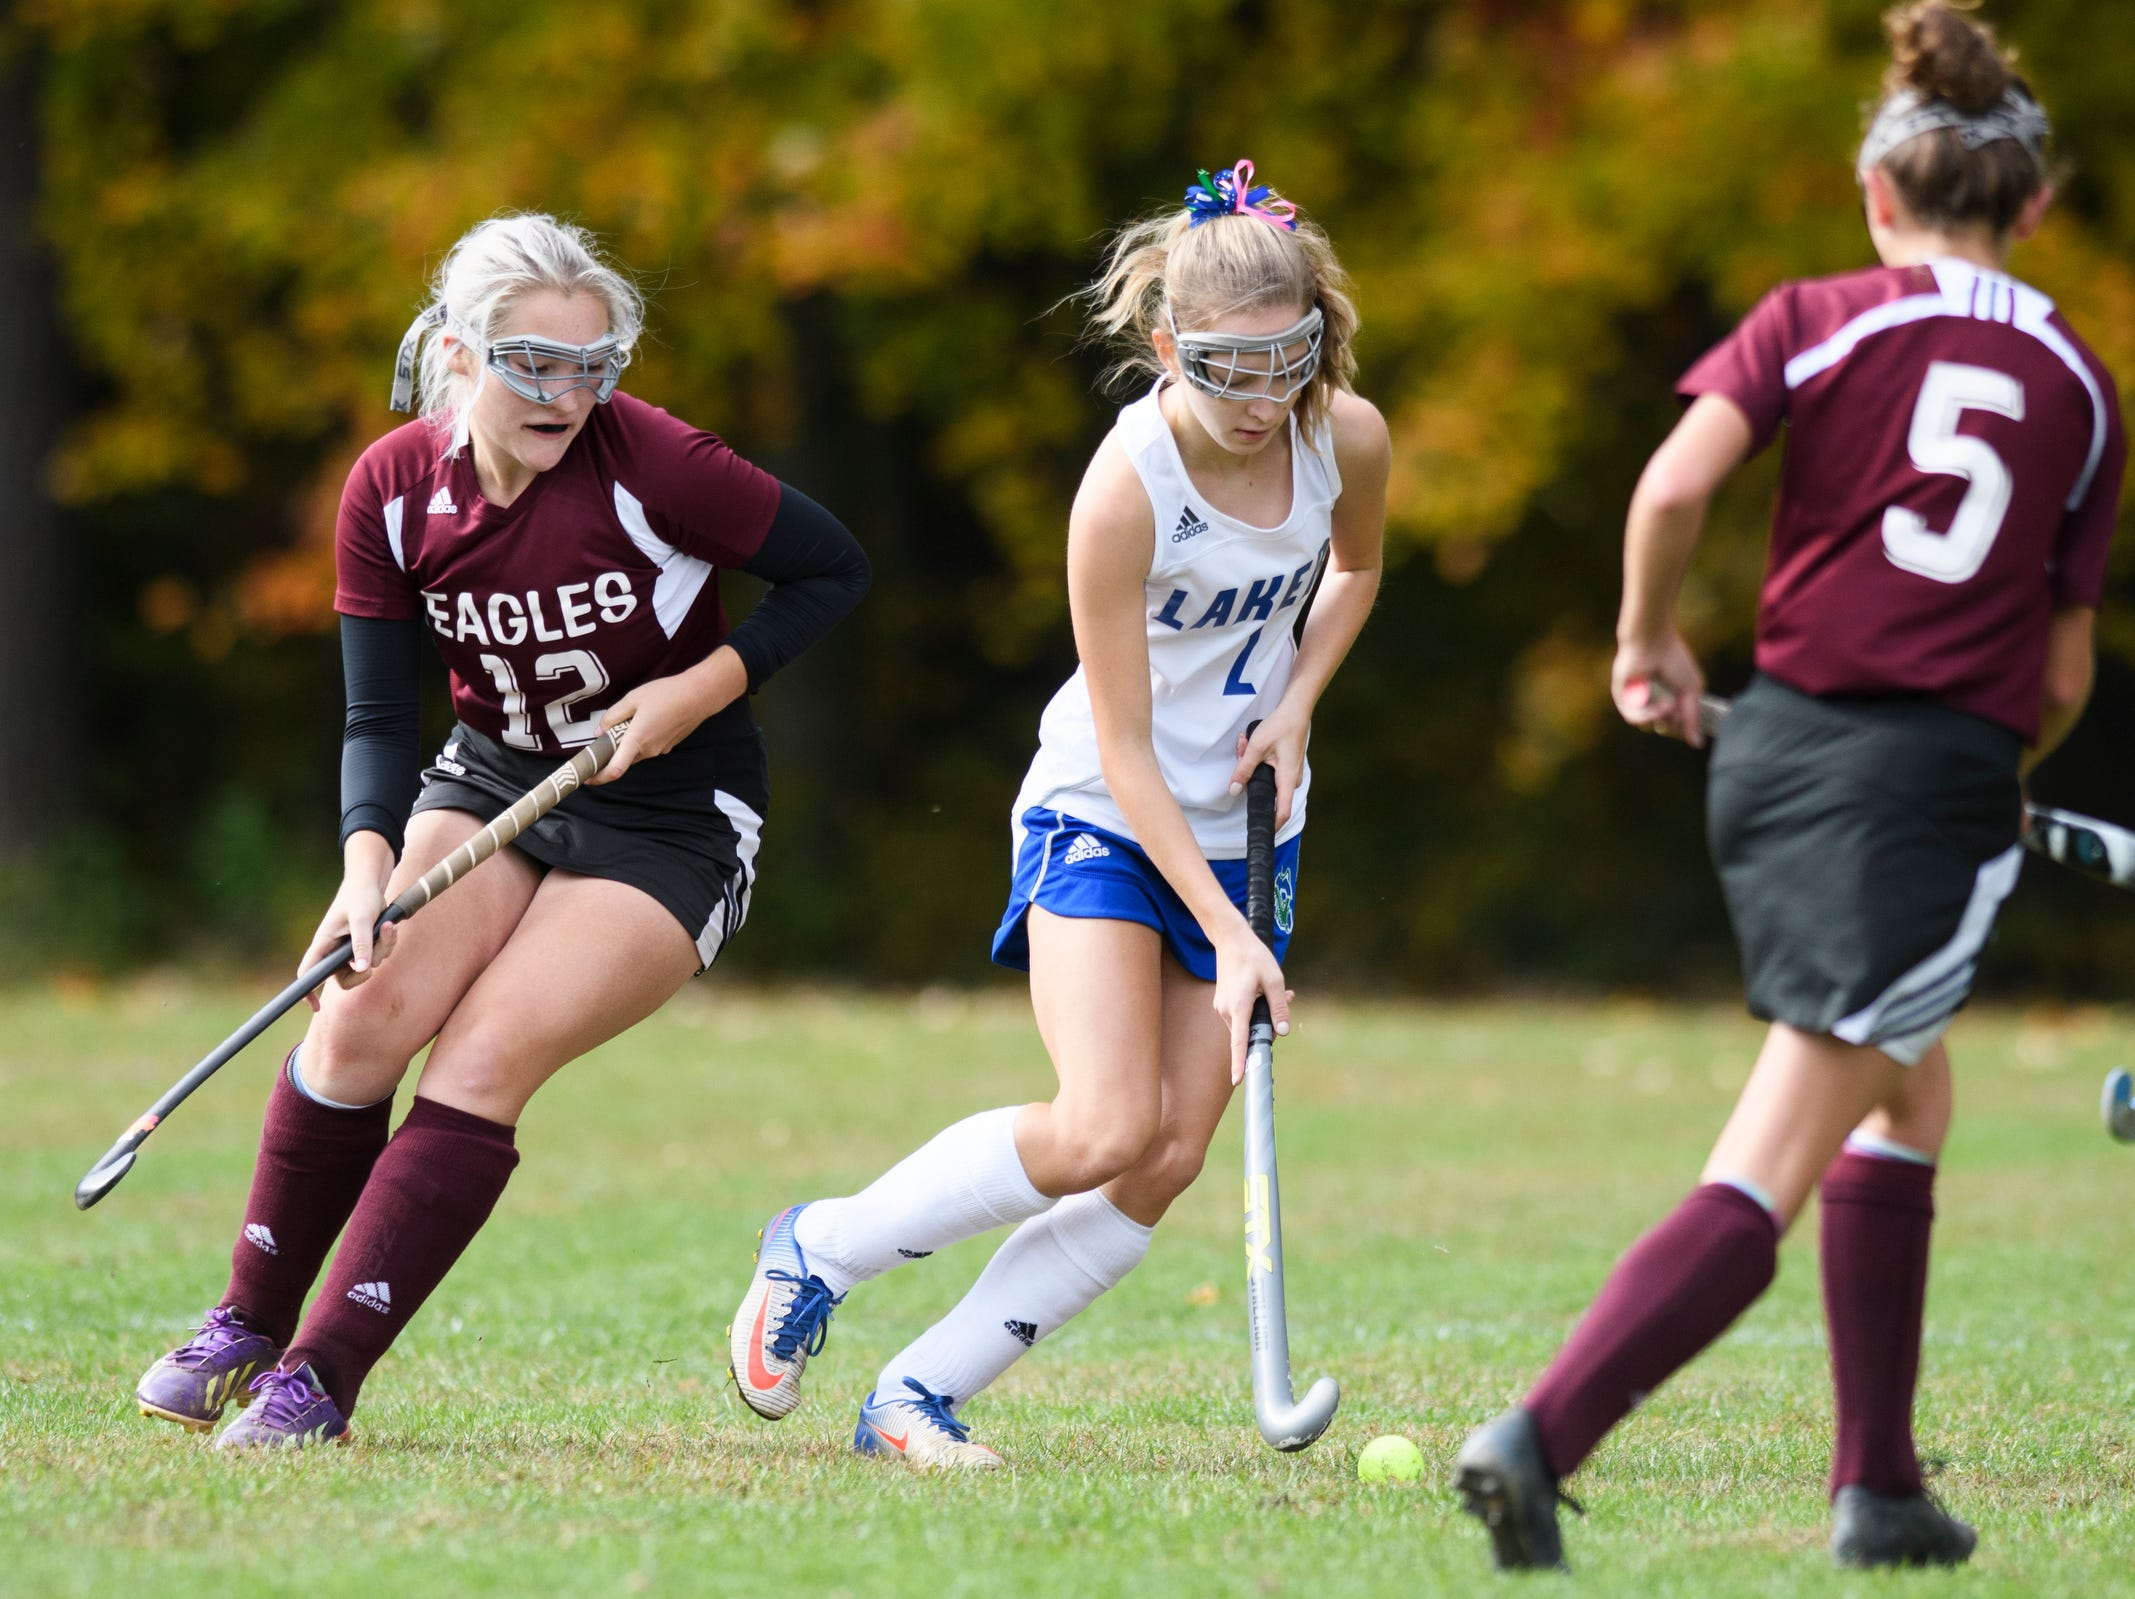 Colchester's Chloe Echo (2) runs with the ball during the field hockey game between Mount Abraham and Colchester at Colchester High School on Saturday morning October 20, 2018 in Colchester.